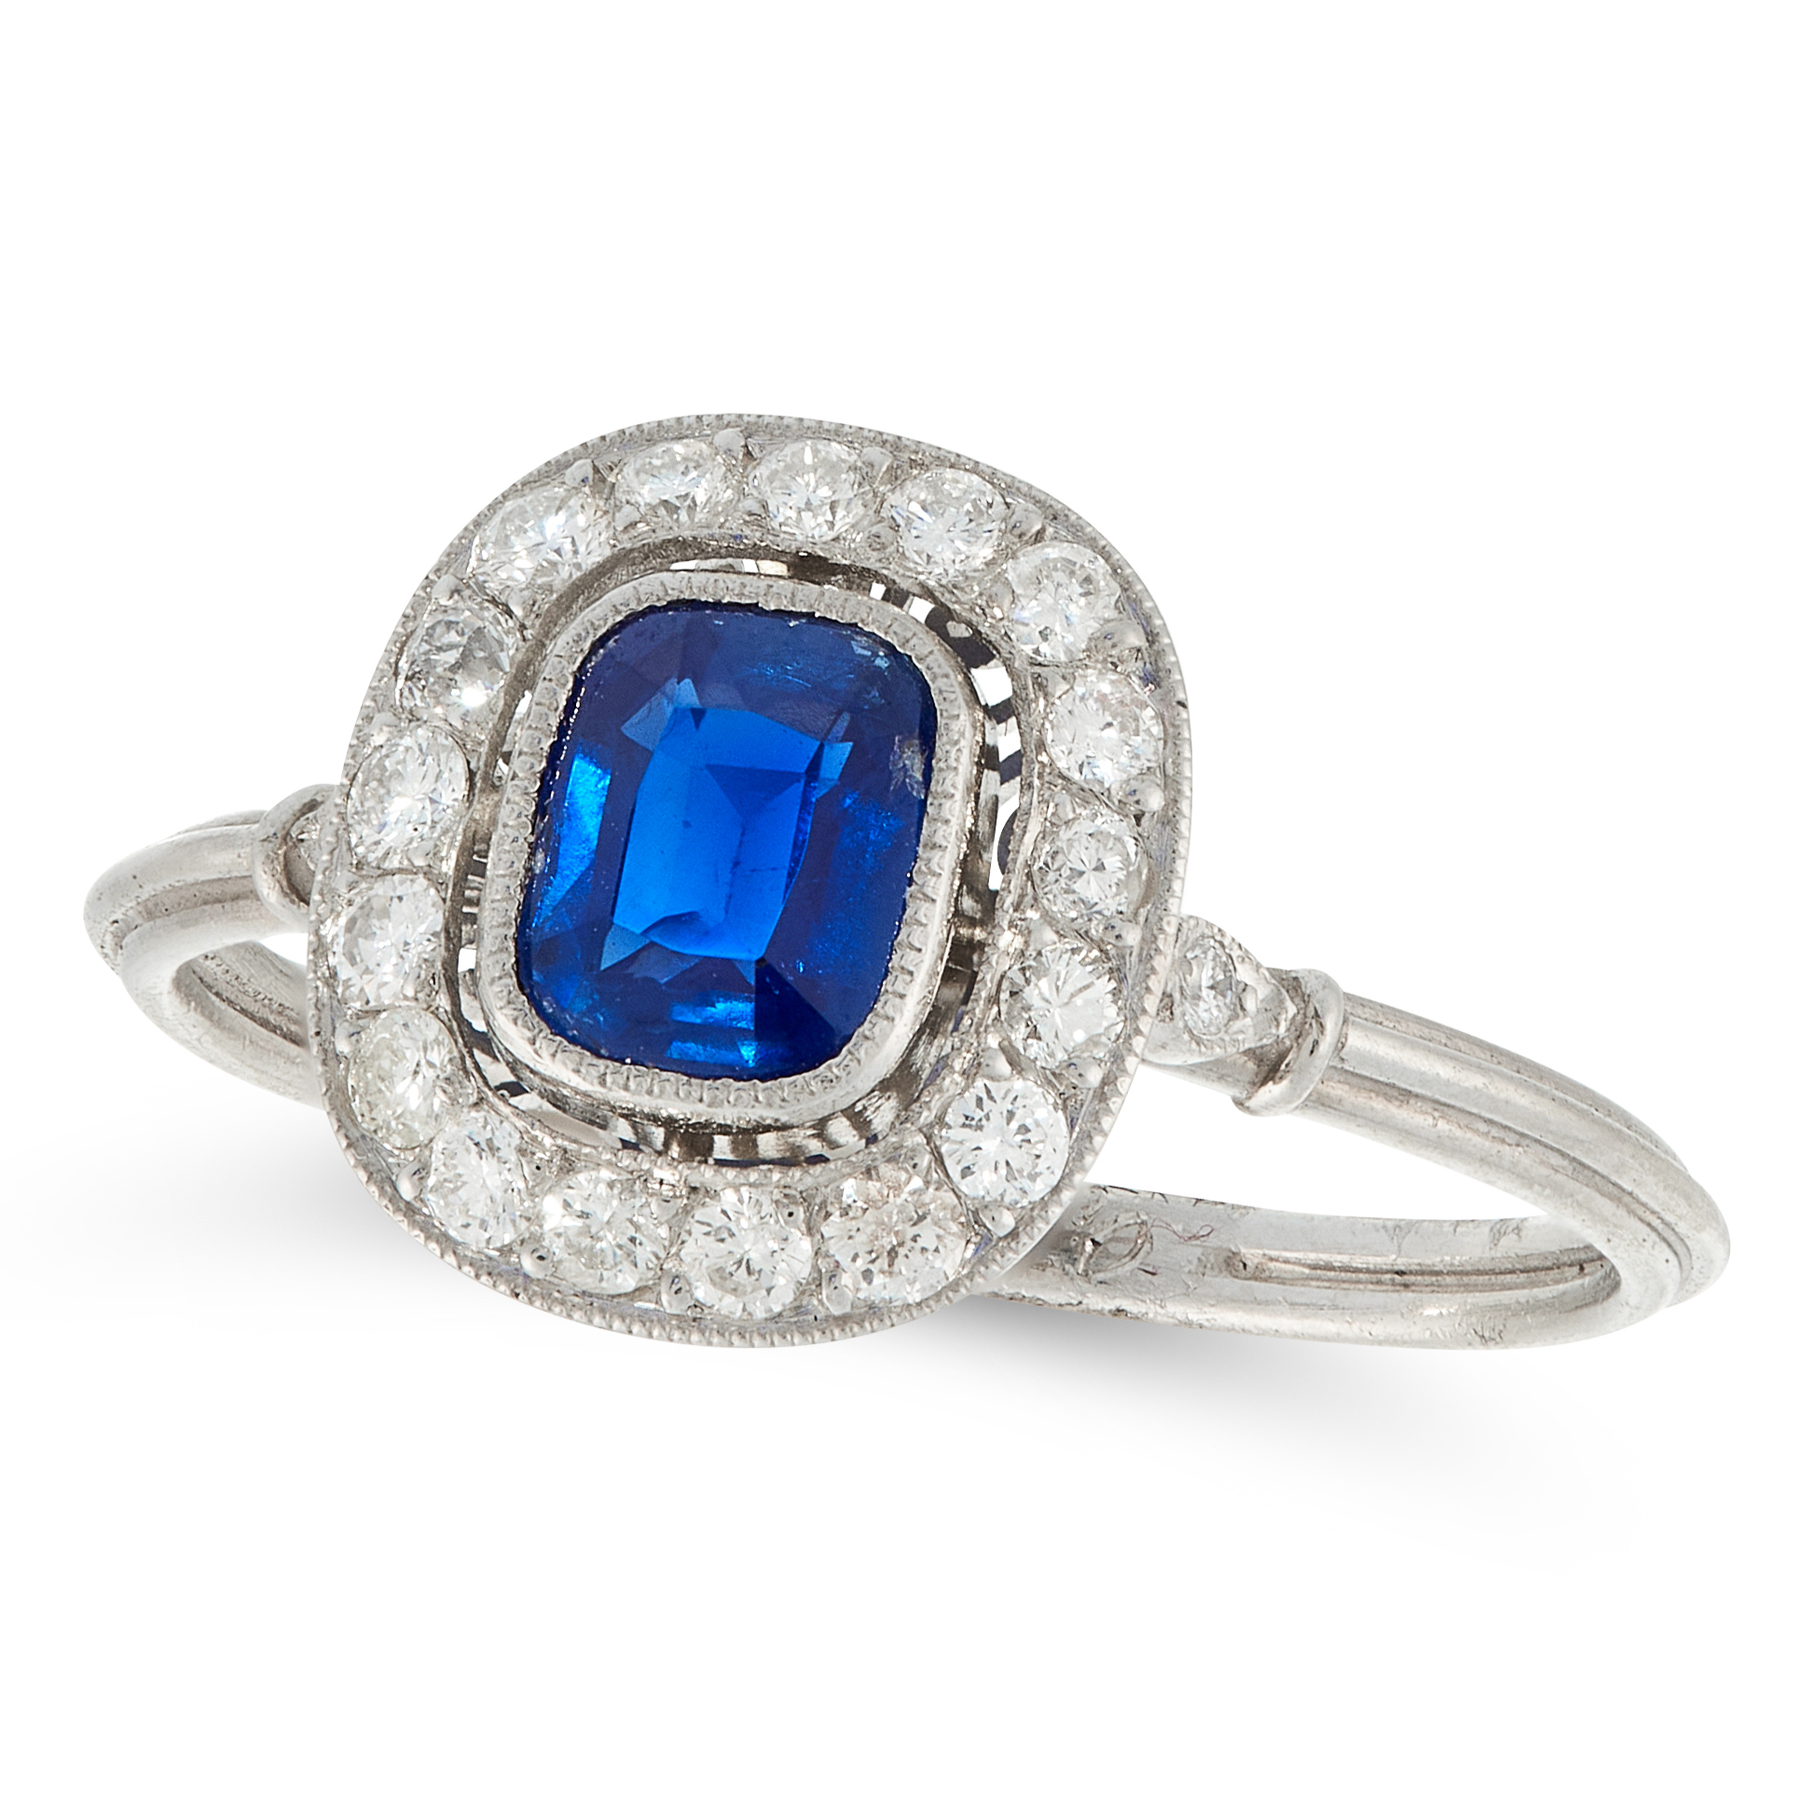 A SAPPHIRE AND DIAMOND DRESS RING in platinum, set with a cushion cut sapphire of 0.77 carats within